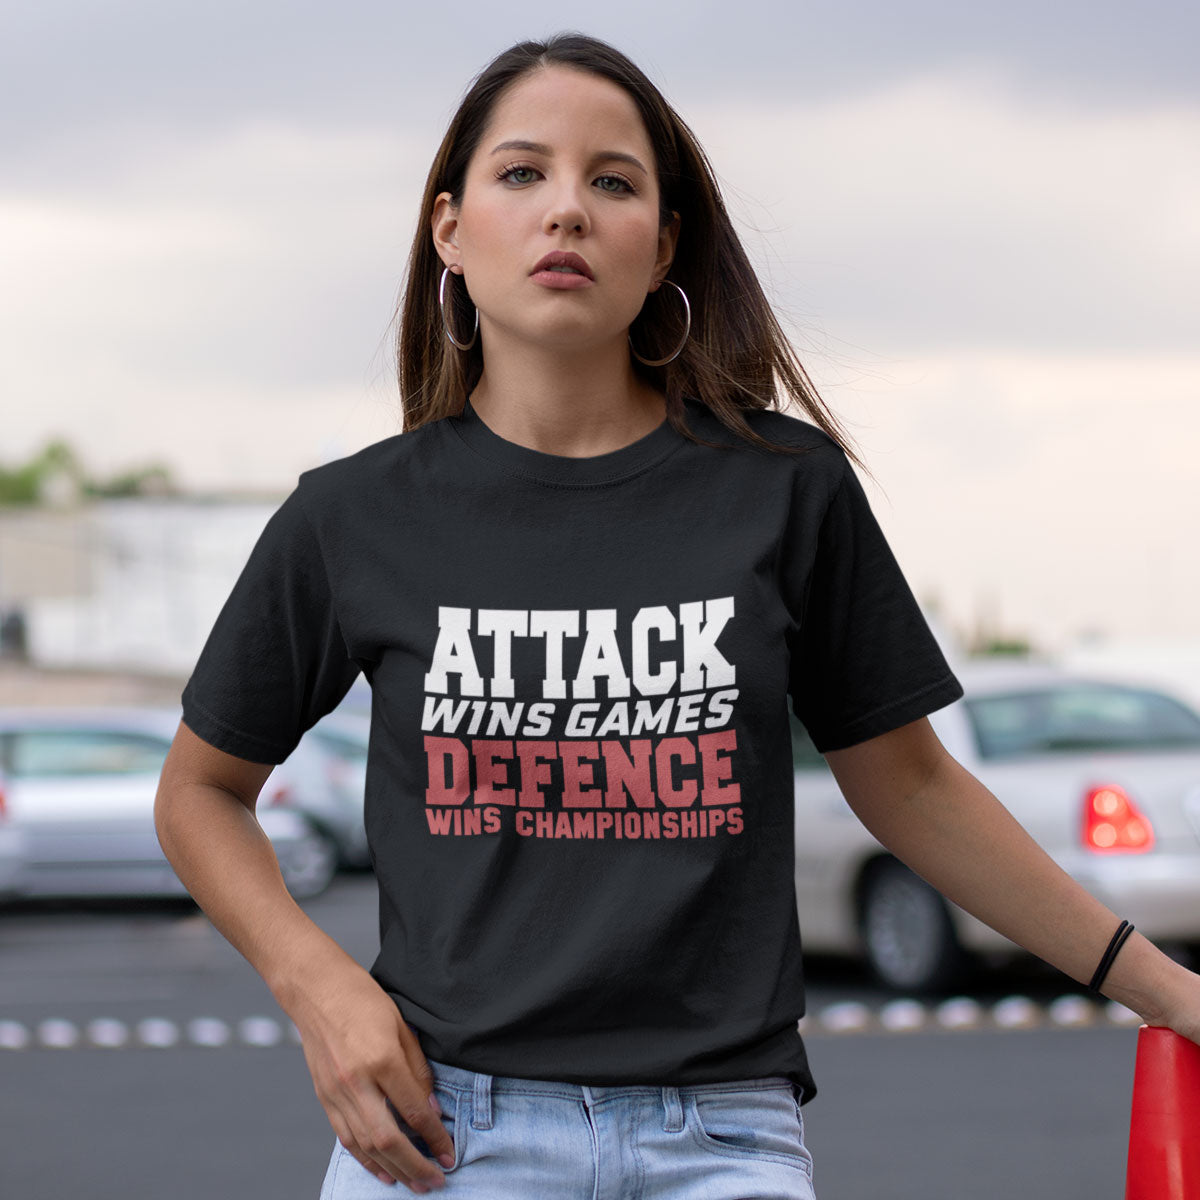 Women's Attack Wins Games, Defence Wins Championships Rugby Tee